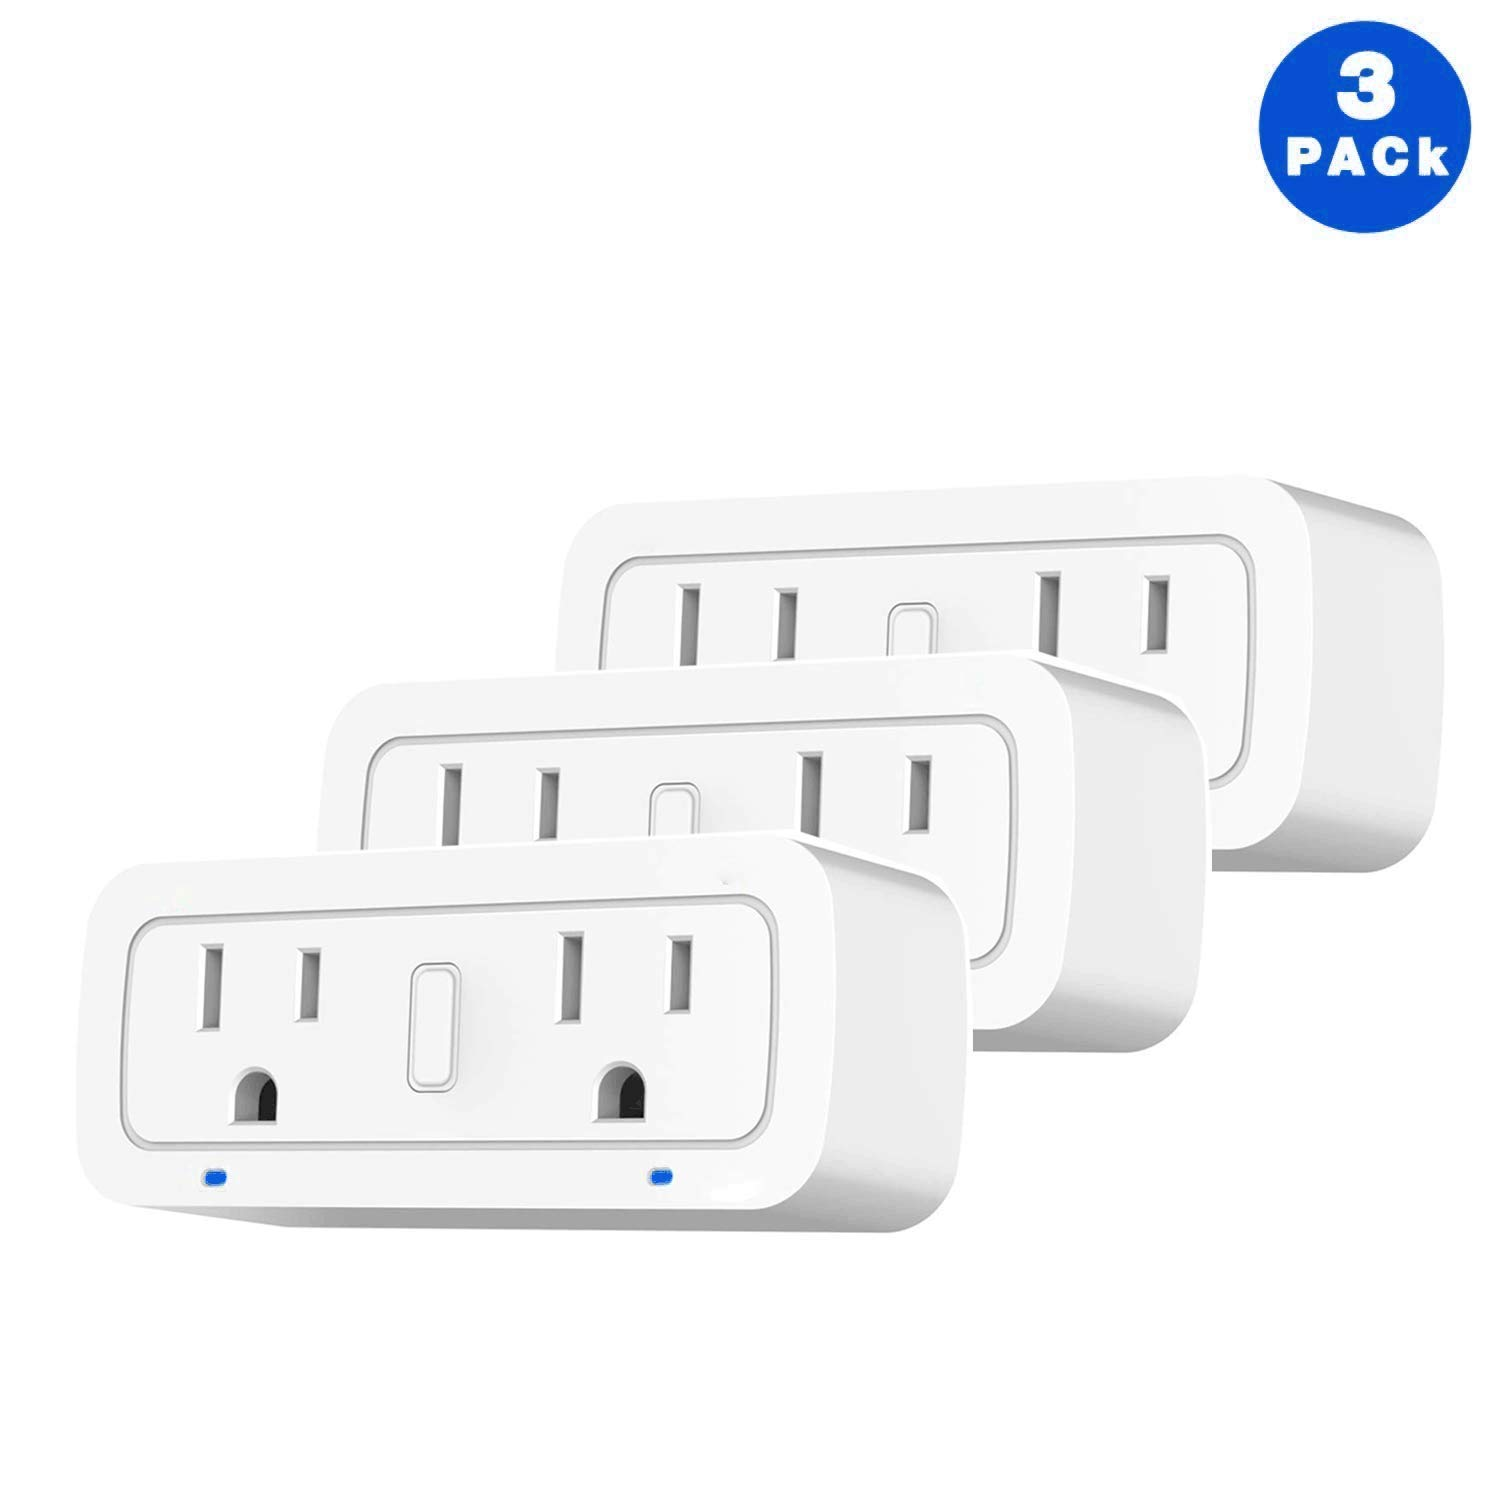 BRTLX WiFi Smart Plug Socket Works with Alexa Echo/Google Home/IFTTT,Dual Mini Outlets with Energy Monitoring and Timer, No Hub Required, Controlled Devices from Anywhere, 2 Years Warranty,3 Packs